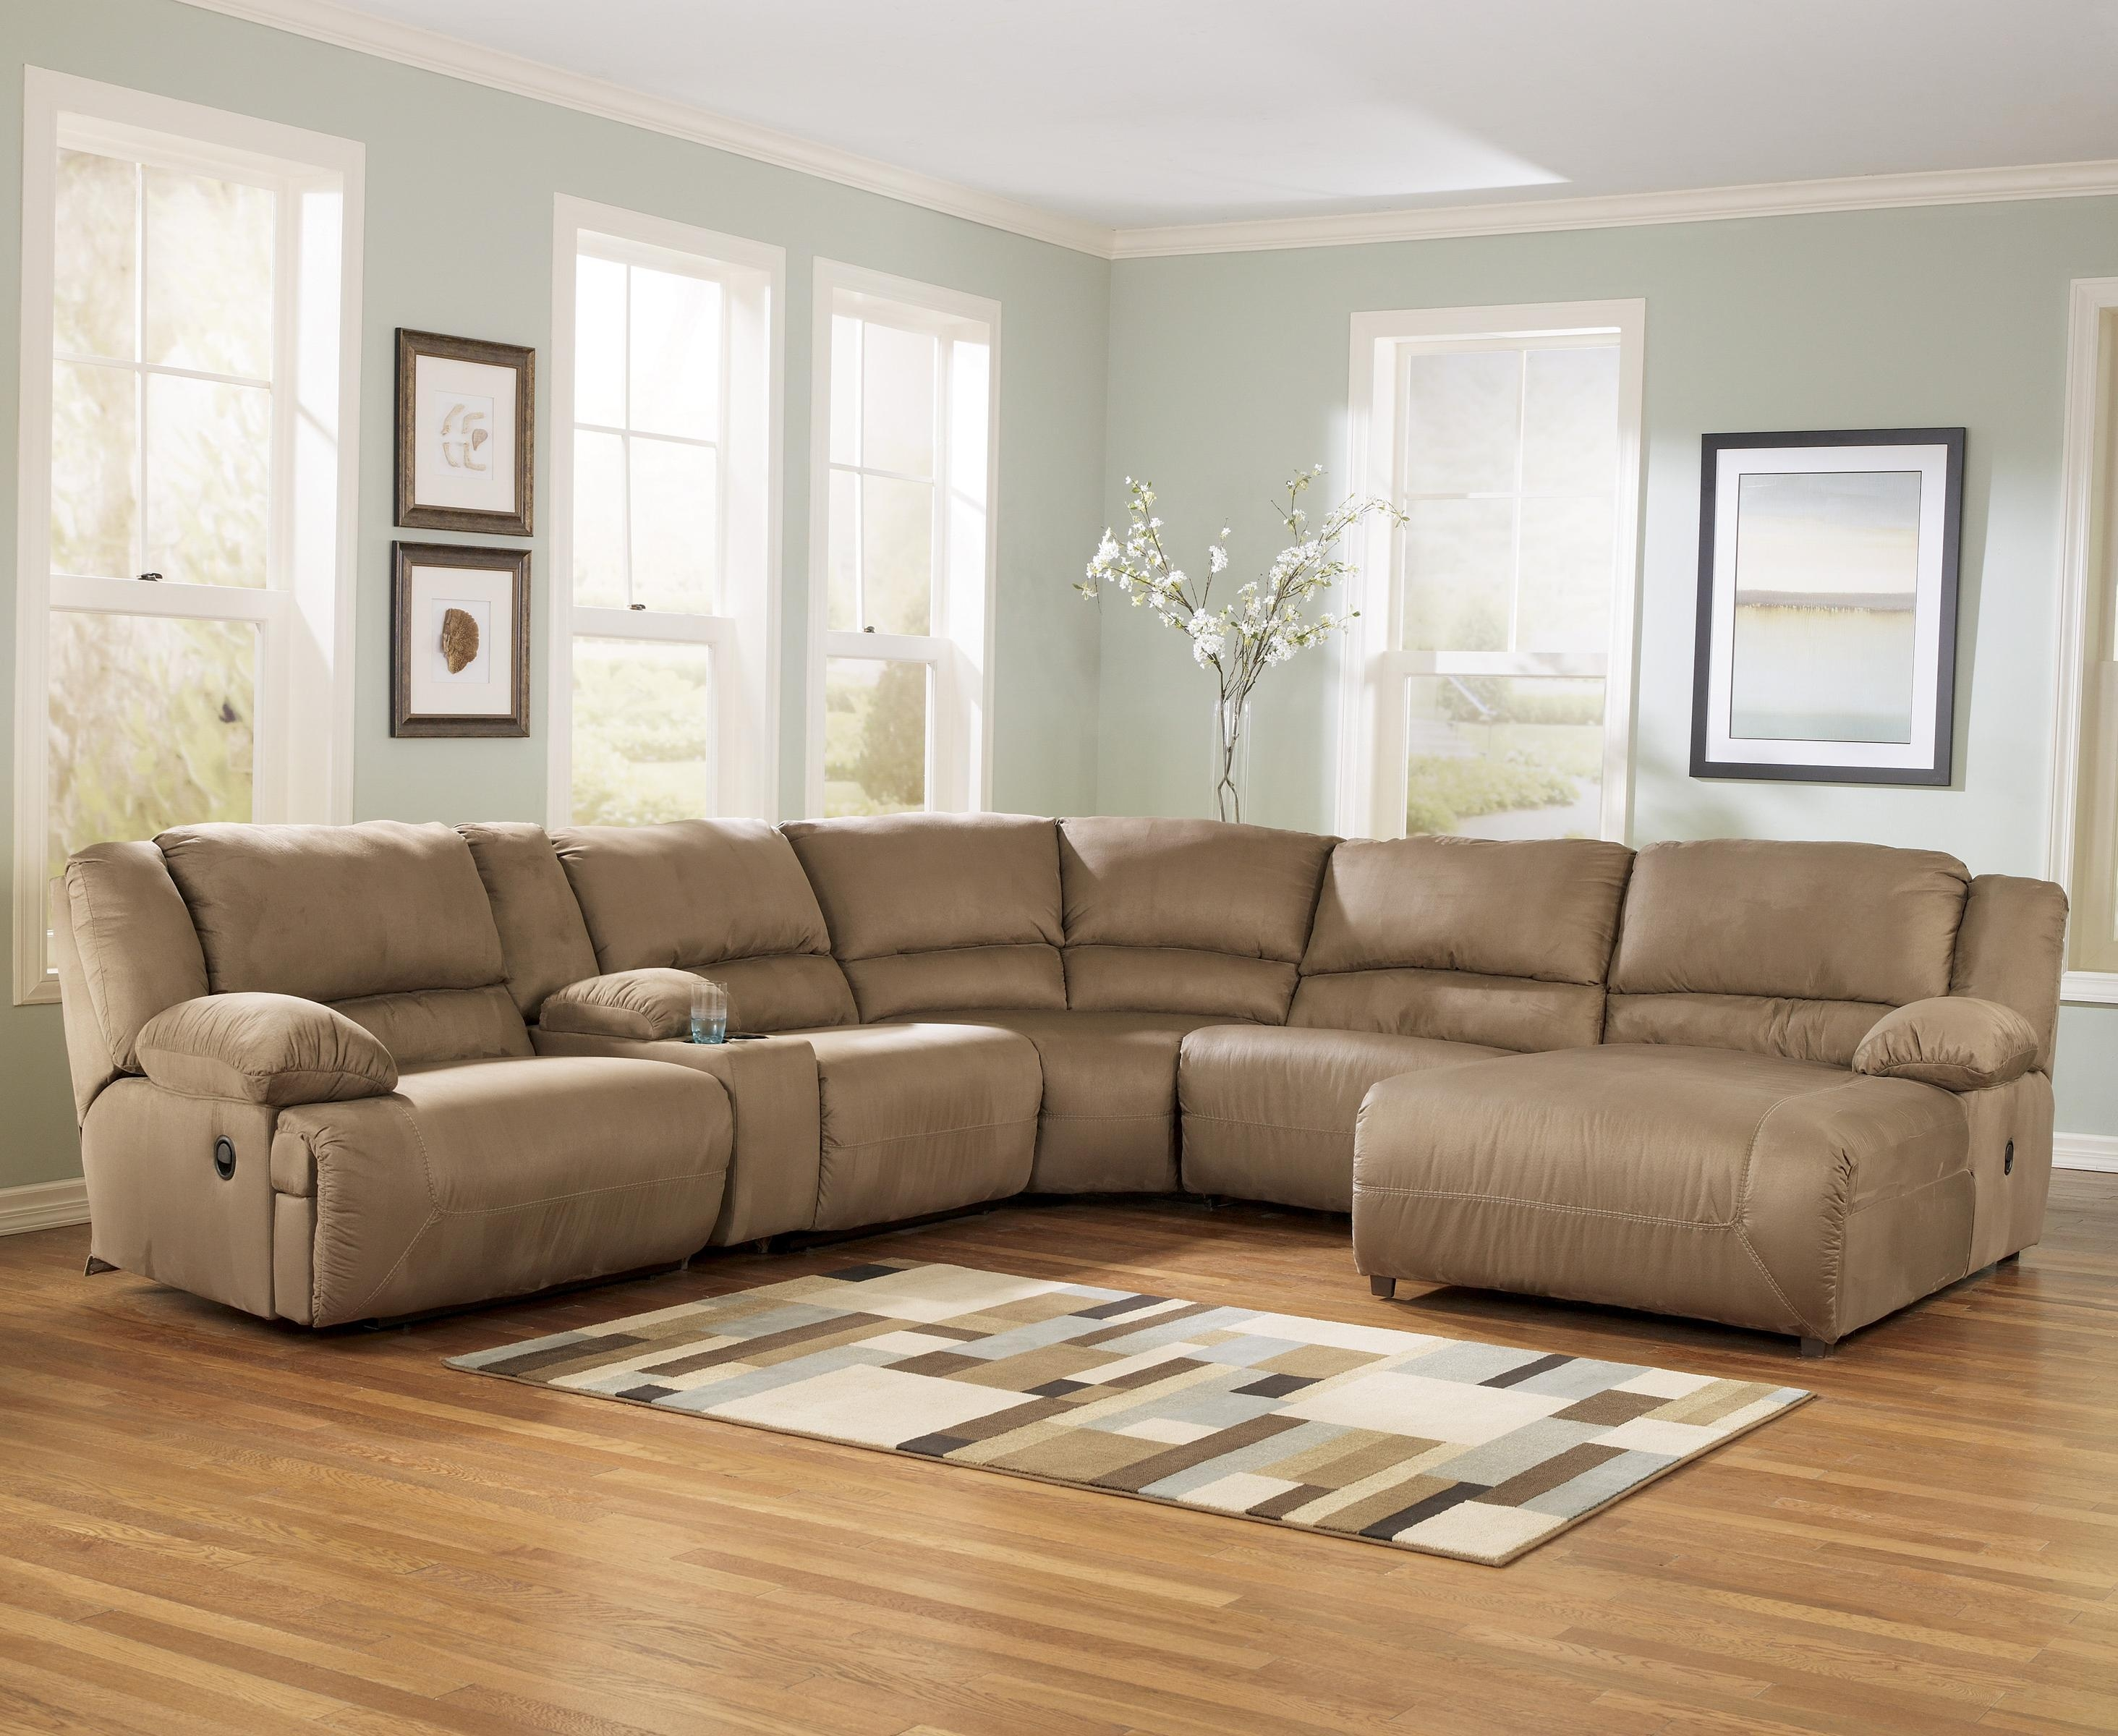 Sectional Sofas With Cup Holders Leather Sofa Cleaner Creations Pertaining To Sofas With Cup Holders (View 14 of 20)